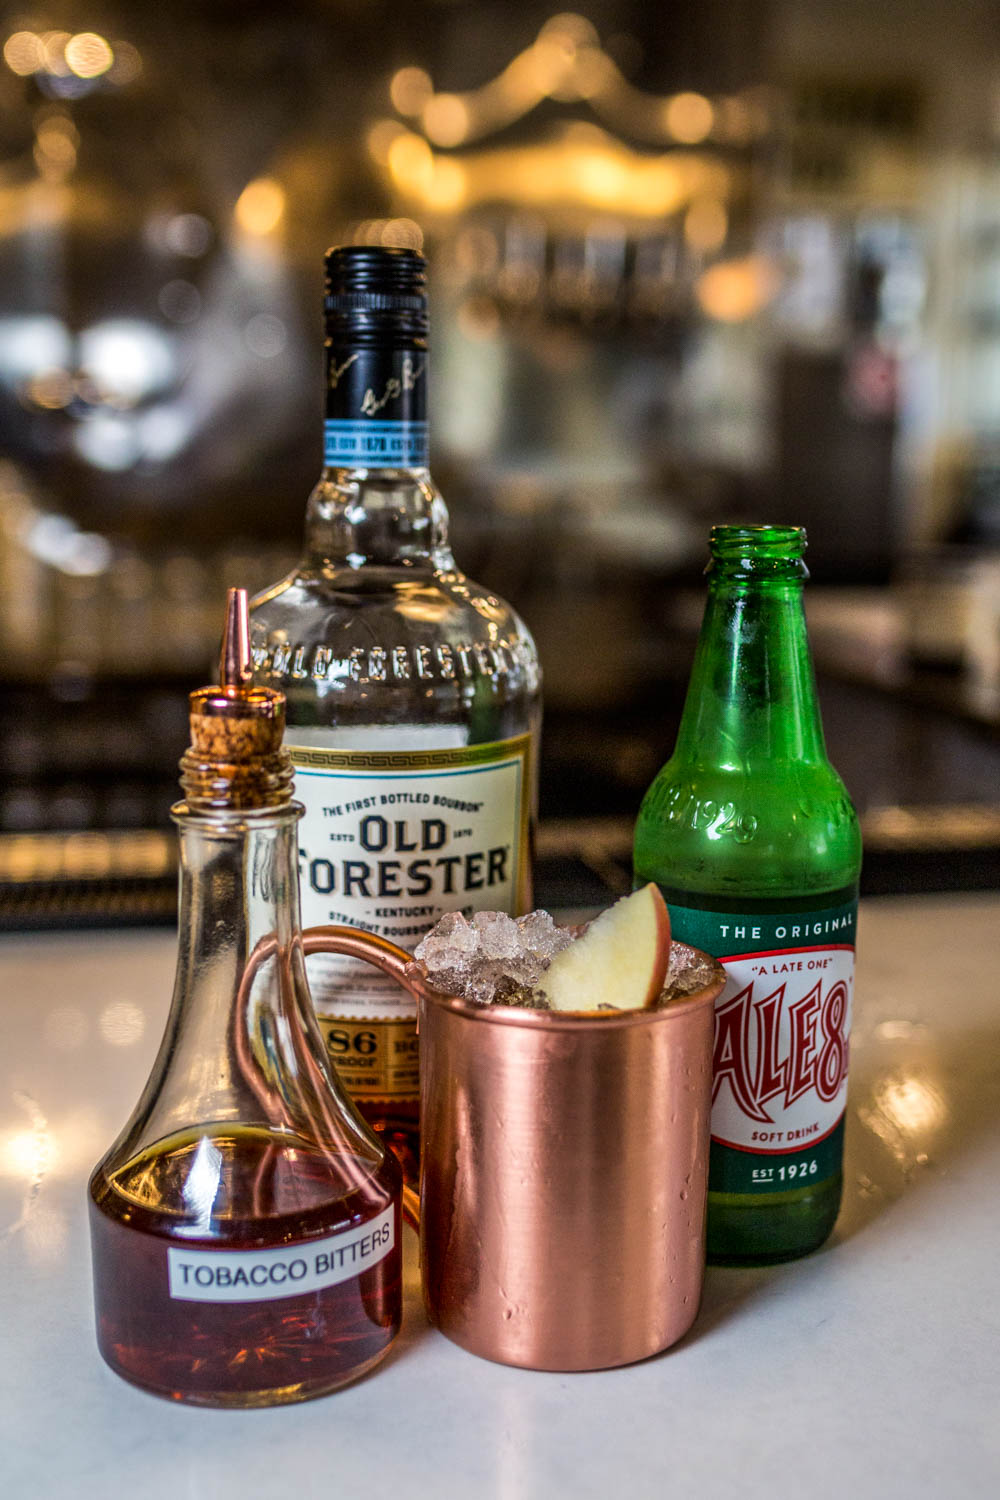 KY Tonic: bourbon, Ale 8, tobacco bitters, and apple slice served over flaked ice / Image: Catherine Viox{ }// Published: 10.17.19